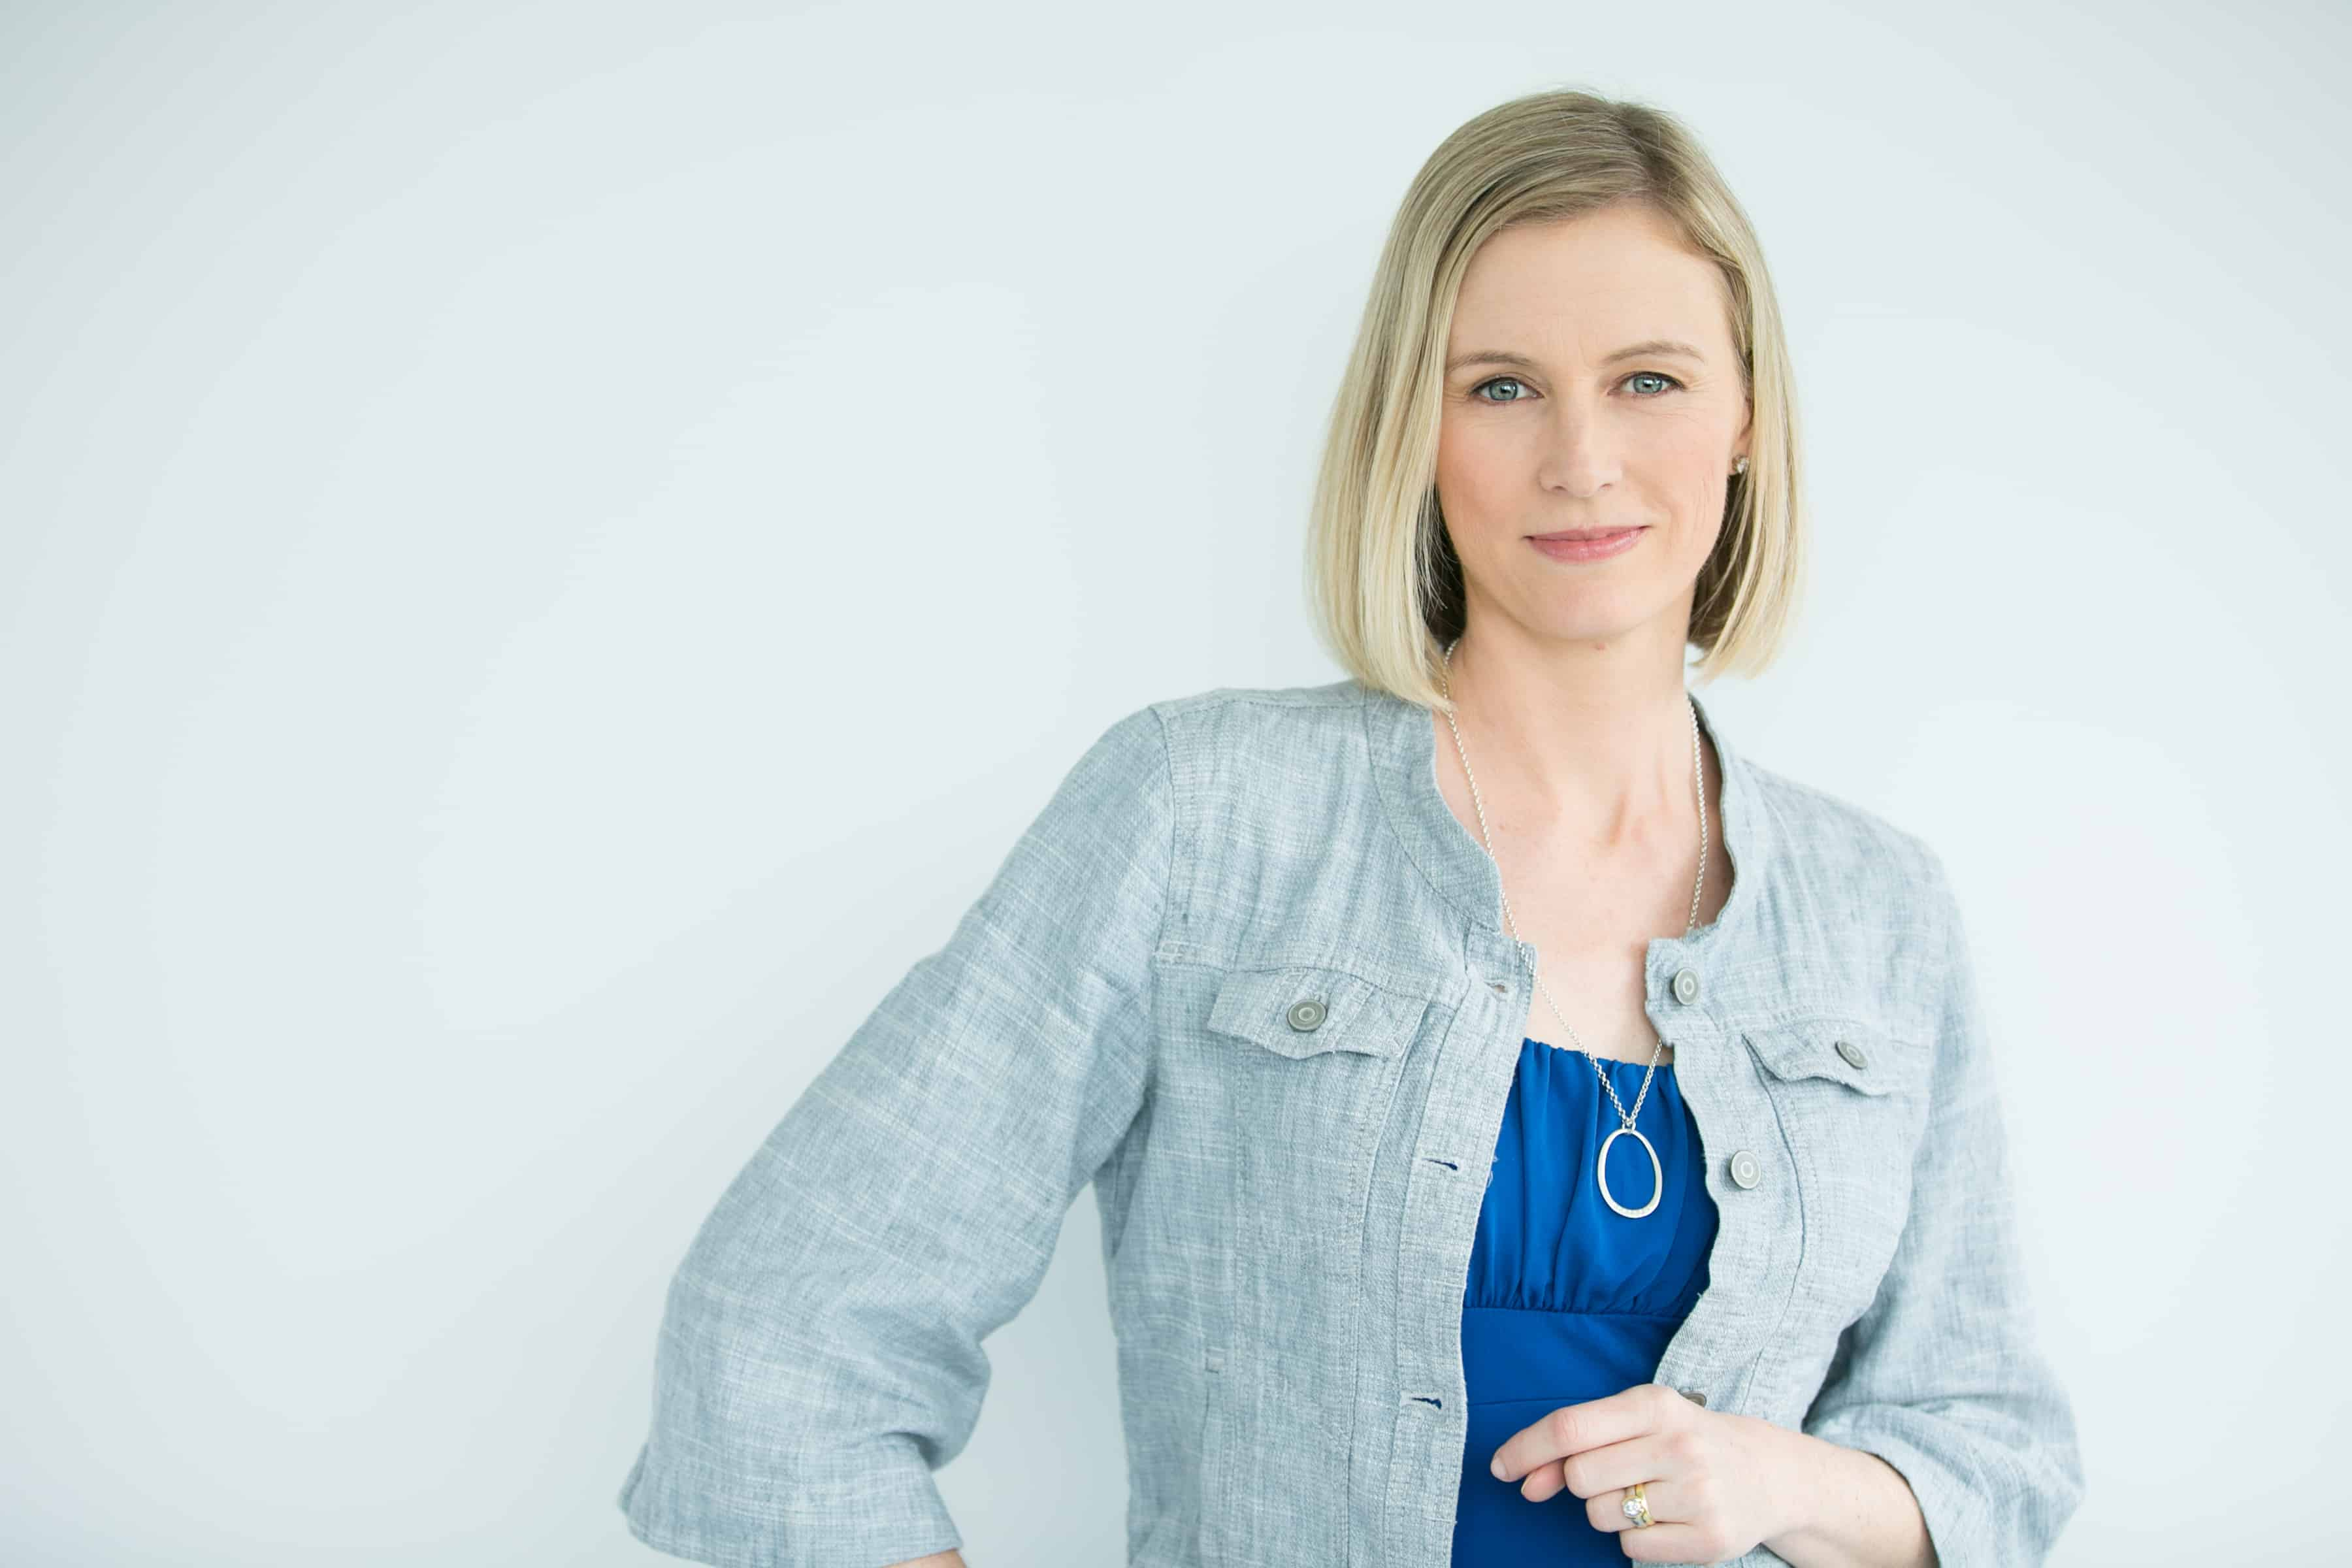 Claire Snyman – The Woman Who Changed the Art of Dealing with Severe Sickness